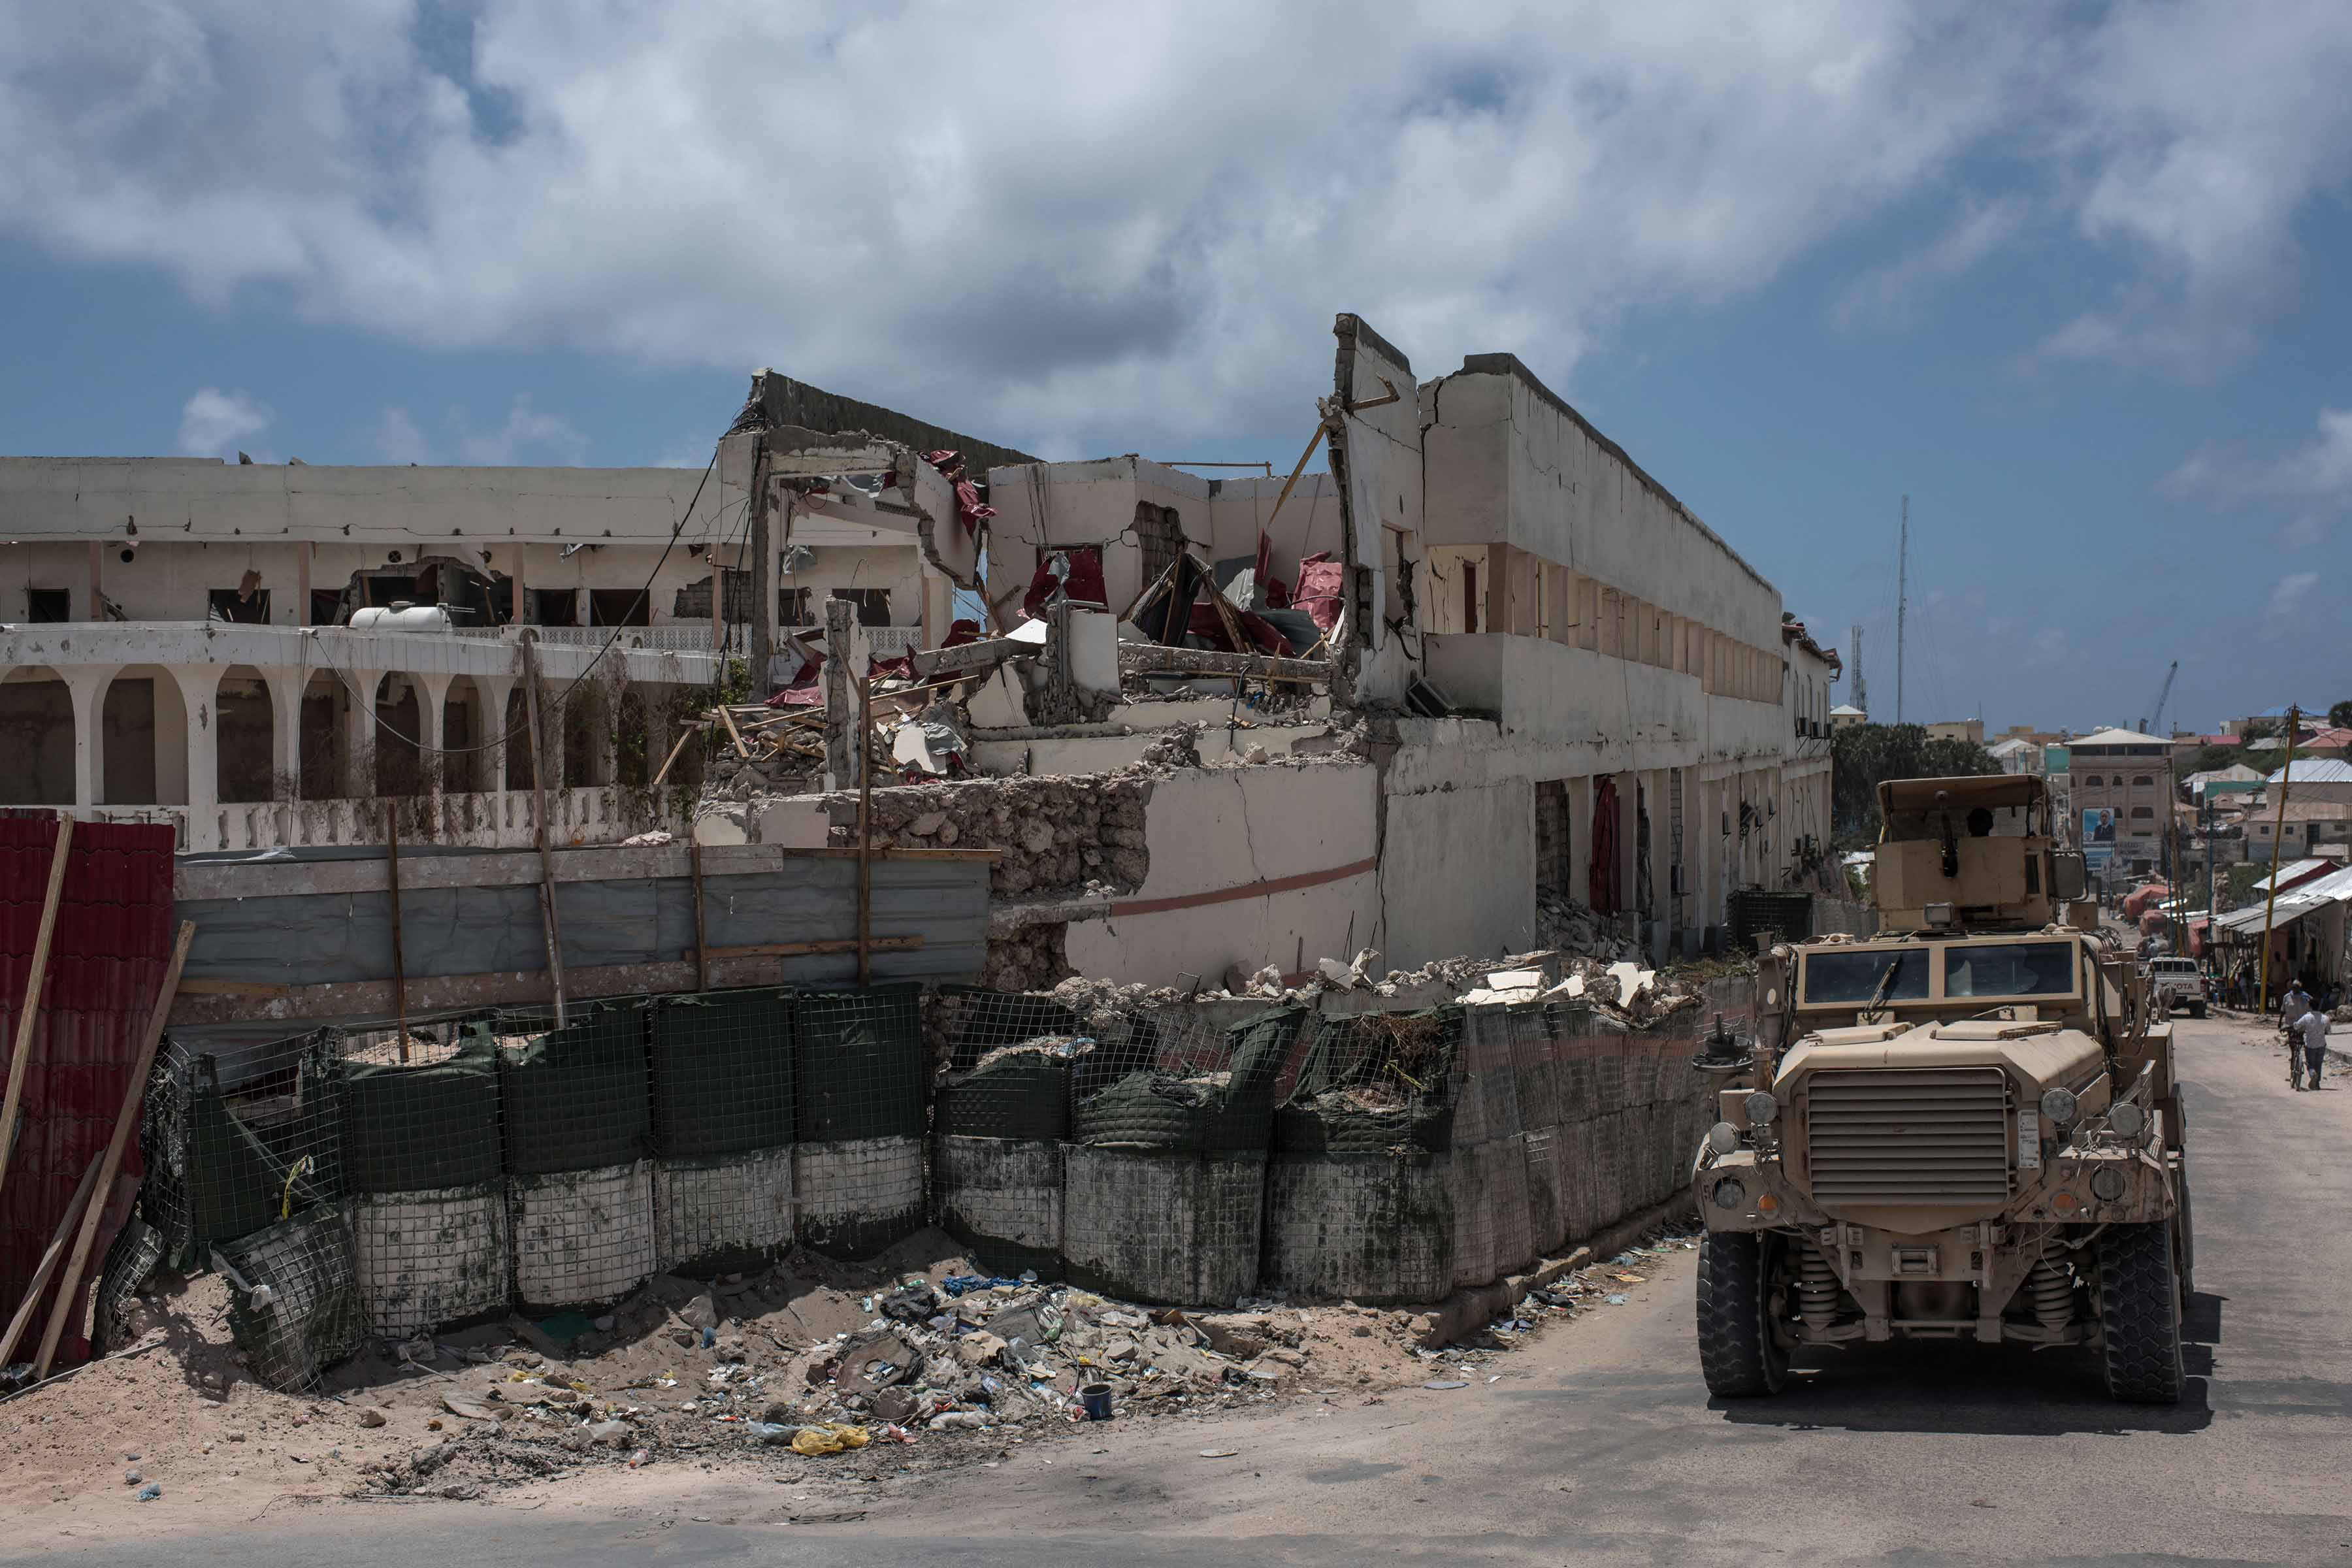 13 October 2016: The SYL Hotel in Mogadishu, Somalia, destroyed by an Al-Shabaab truck bomb. (Photograph by Andrew Renneisen/ Getty Images)